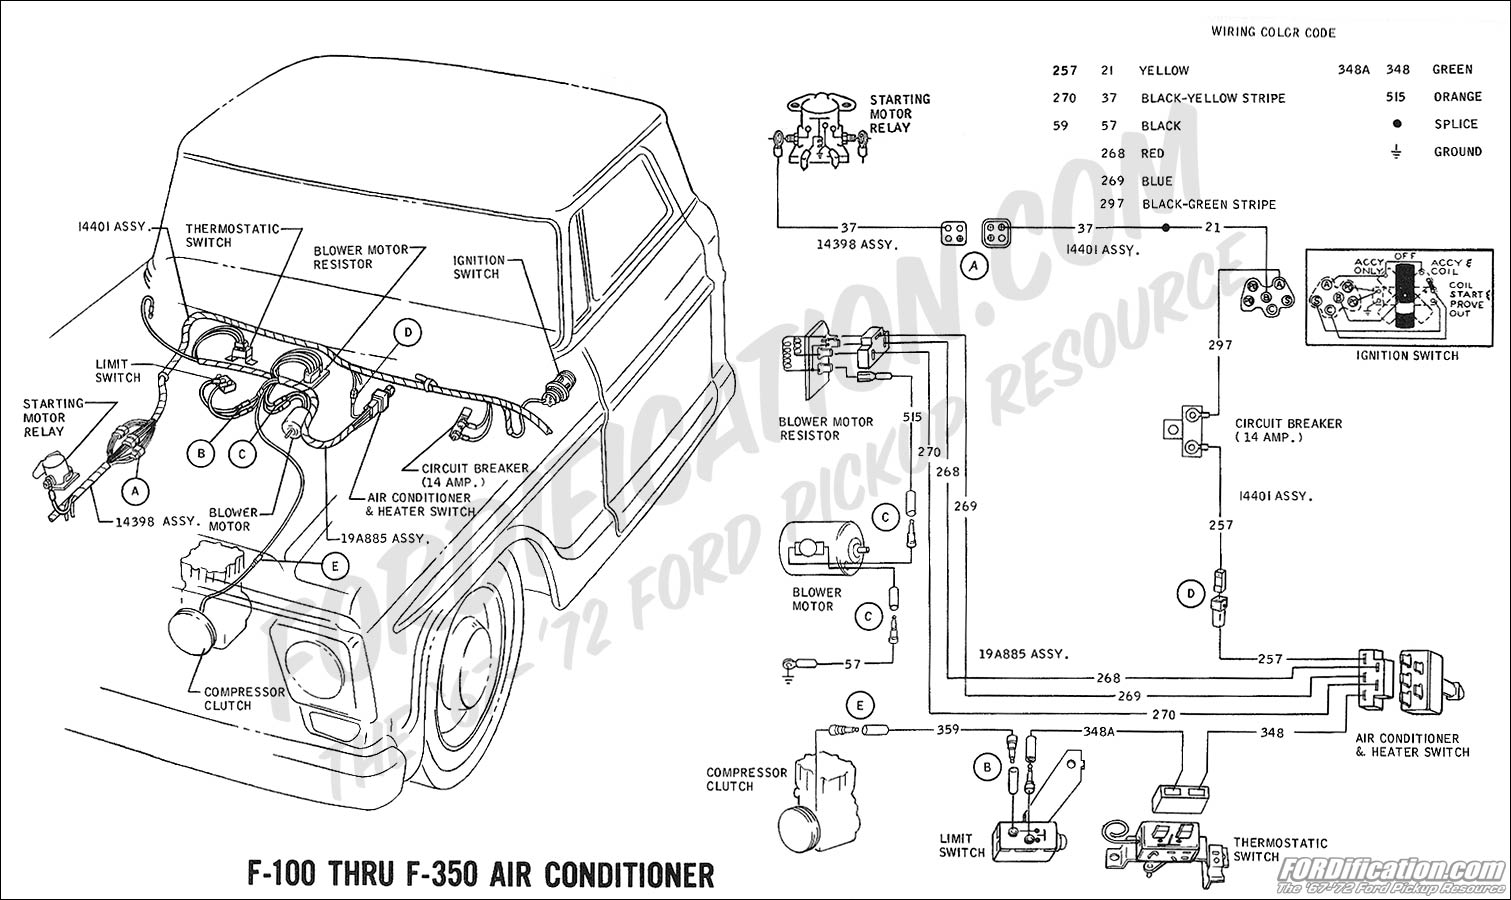 Ford Truck Technical Drawings And Schematics Section H Wiring 1977 Ford F-250  Wiring Diagram Ford F 250 Wiring Diagram Ac